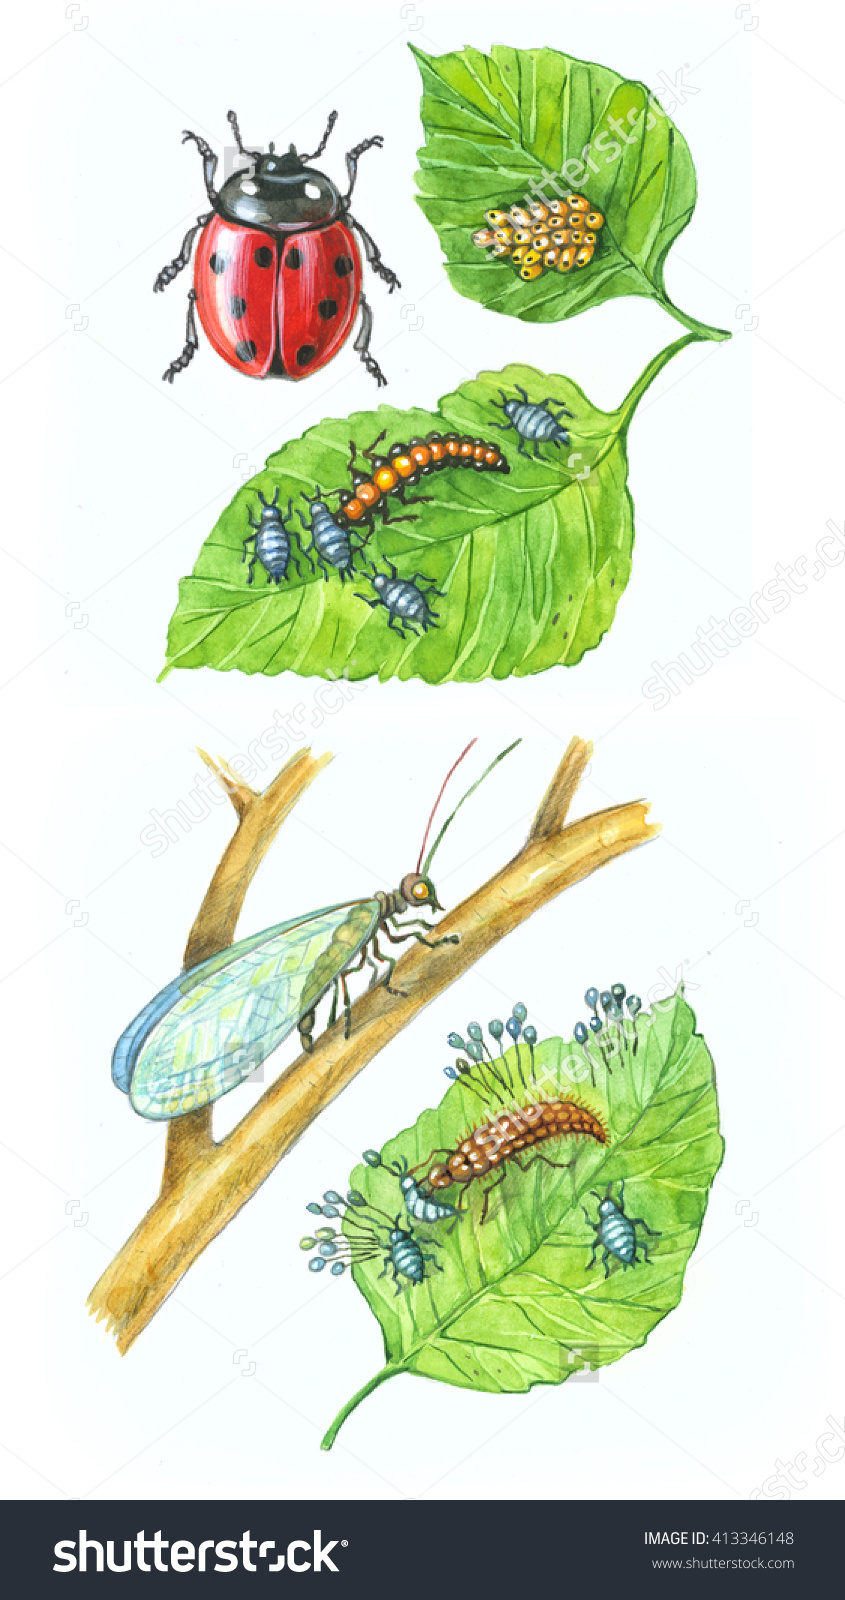 Ladybug. Lacewing On A Branch.Scientific Illustration. The Adult.